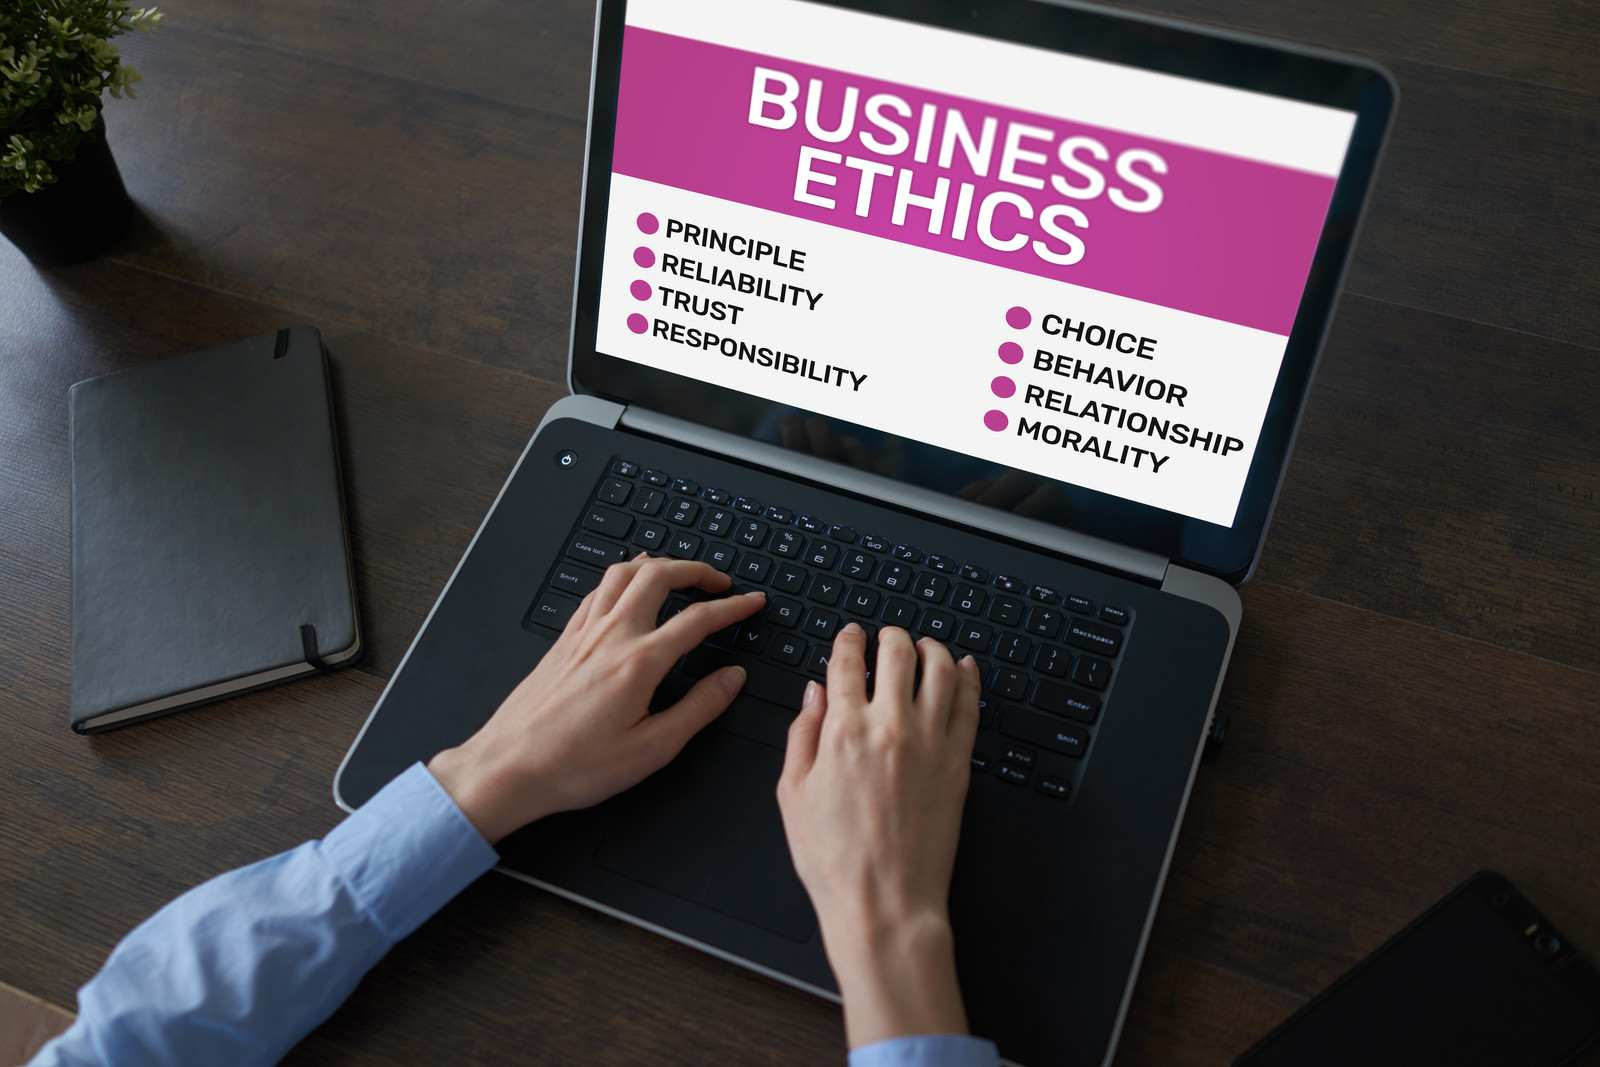 Concepts of business ethics